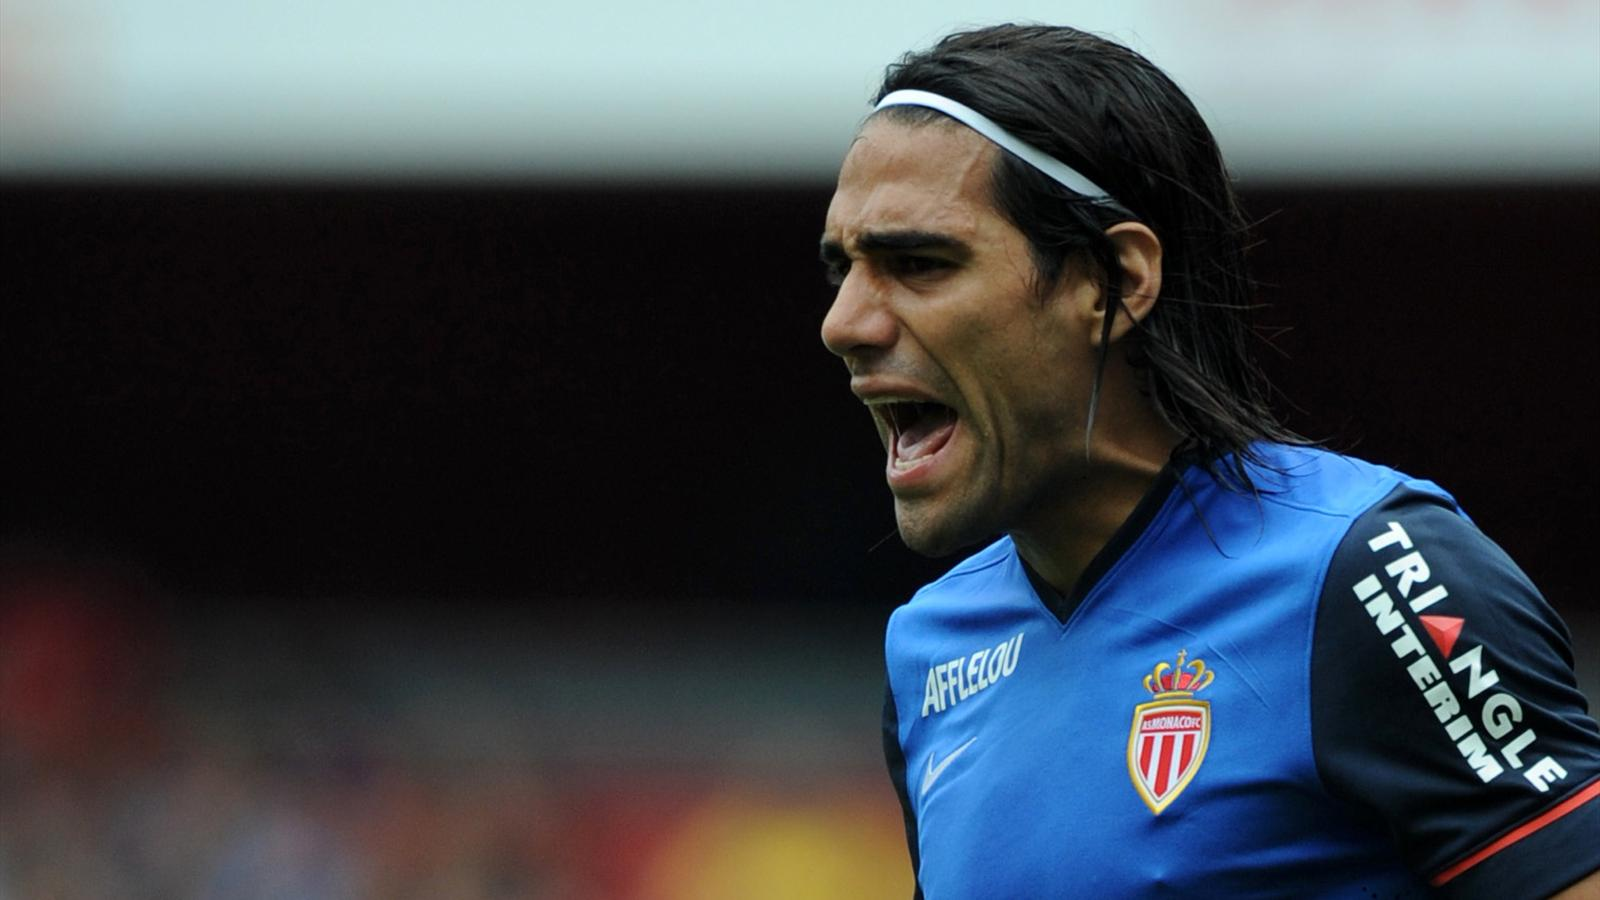 Monaco's Colombian forward Radamel Falcao reacts during the pre-season football friendly match between AS Monaco and Valencia